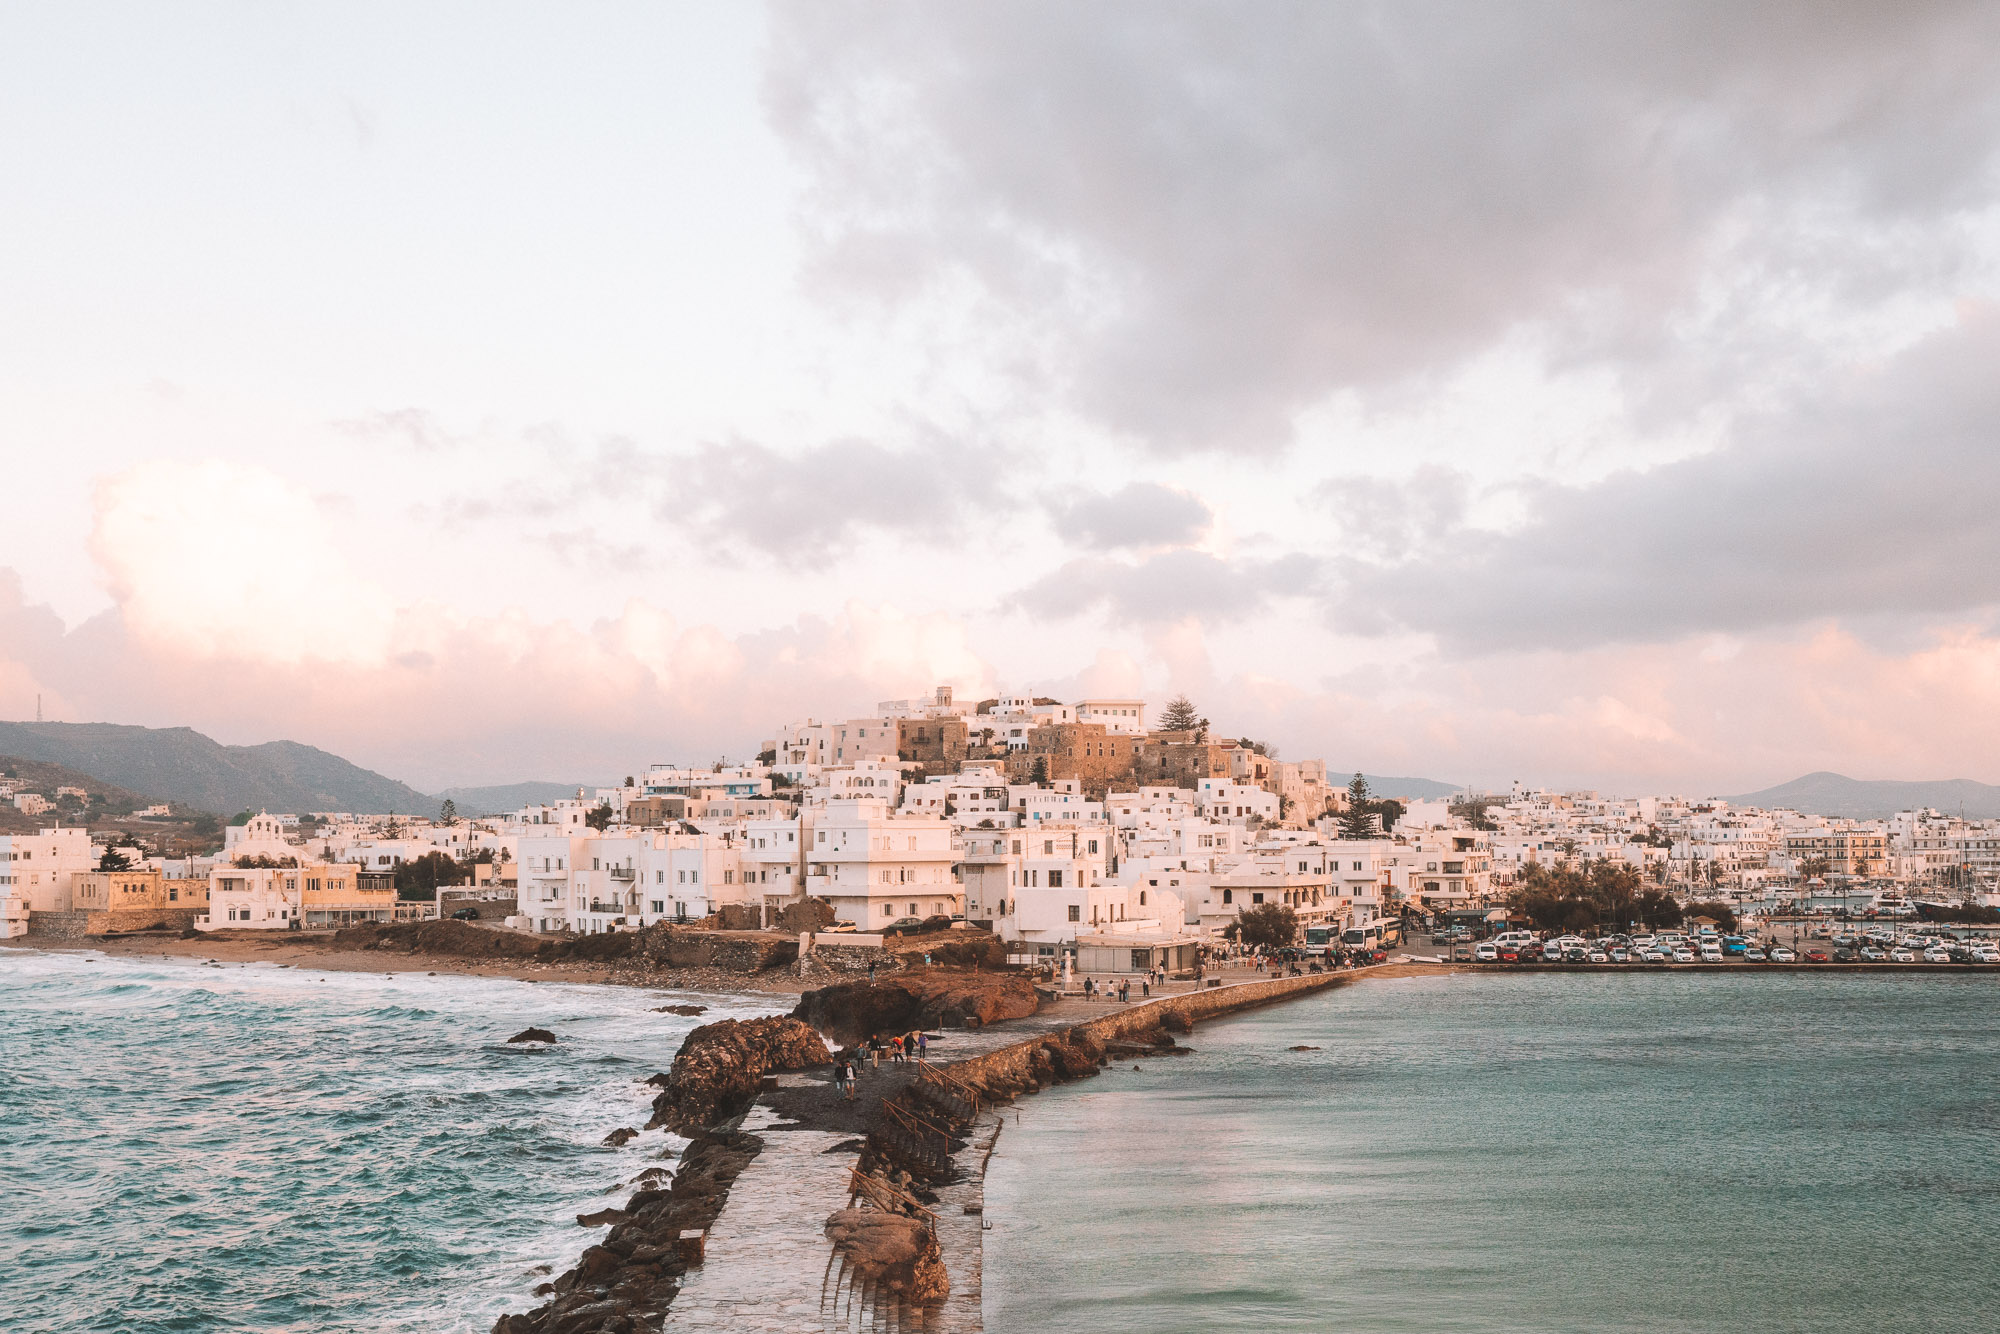 Downtown Naxos from Portara in Naxos, Greece via @finduslost